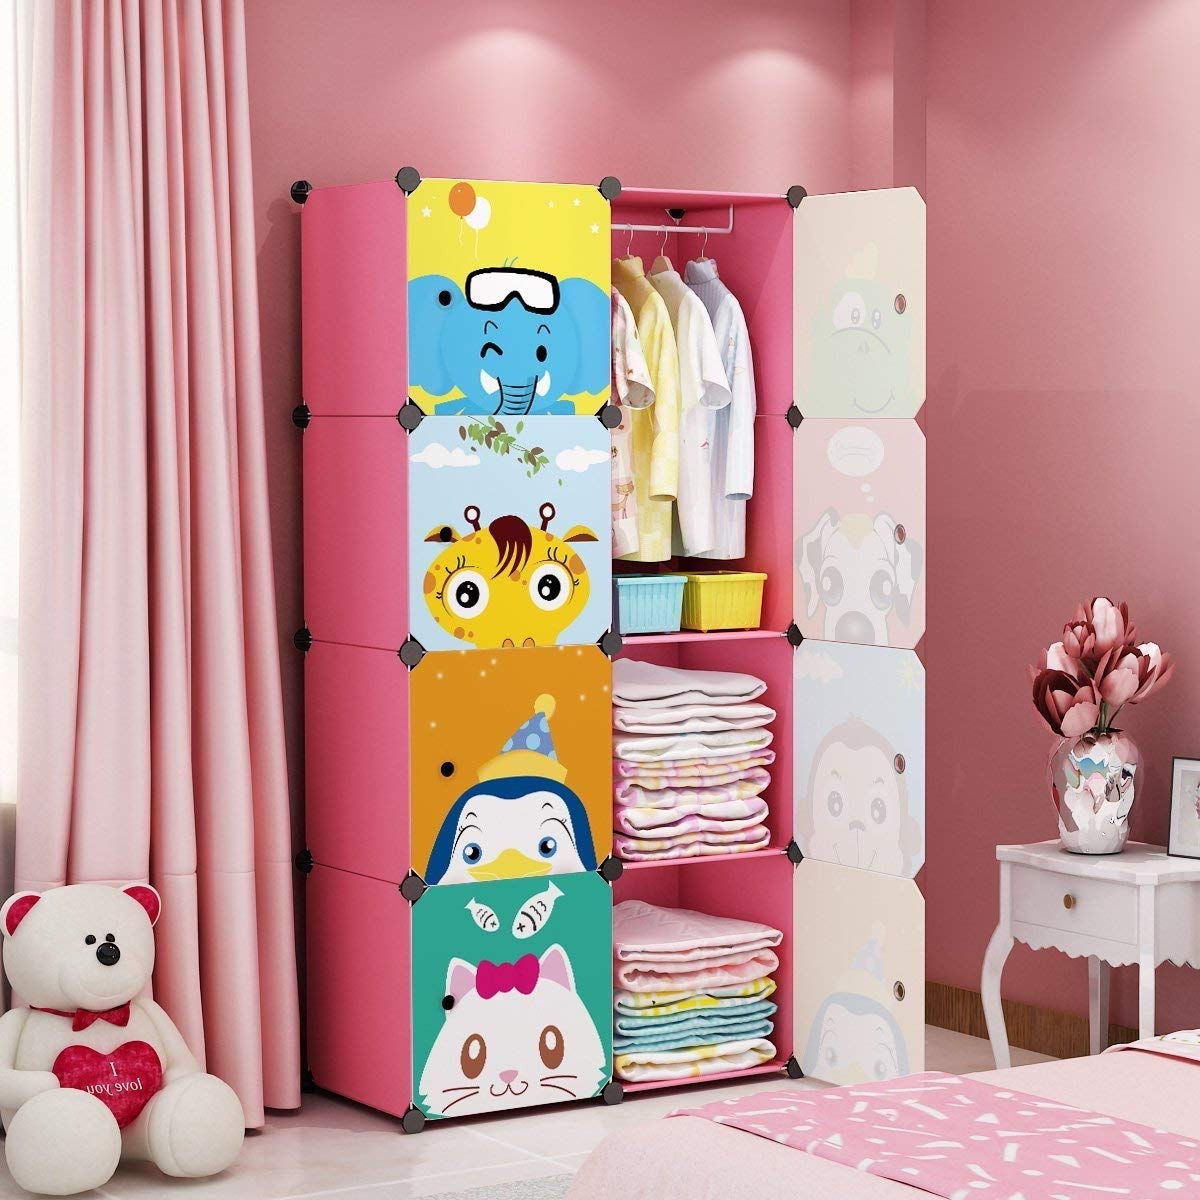 MAGINELS Children Wardrobe Kid Dresser Cute Baby Portable Closet Bedroom Armoire Clothes Hanging Storage Rack Cube Organizer, Large Pink 6 Cube & 1 Hanging Section by MAGINELS